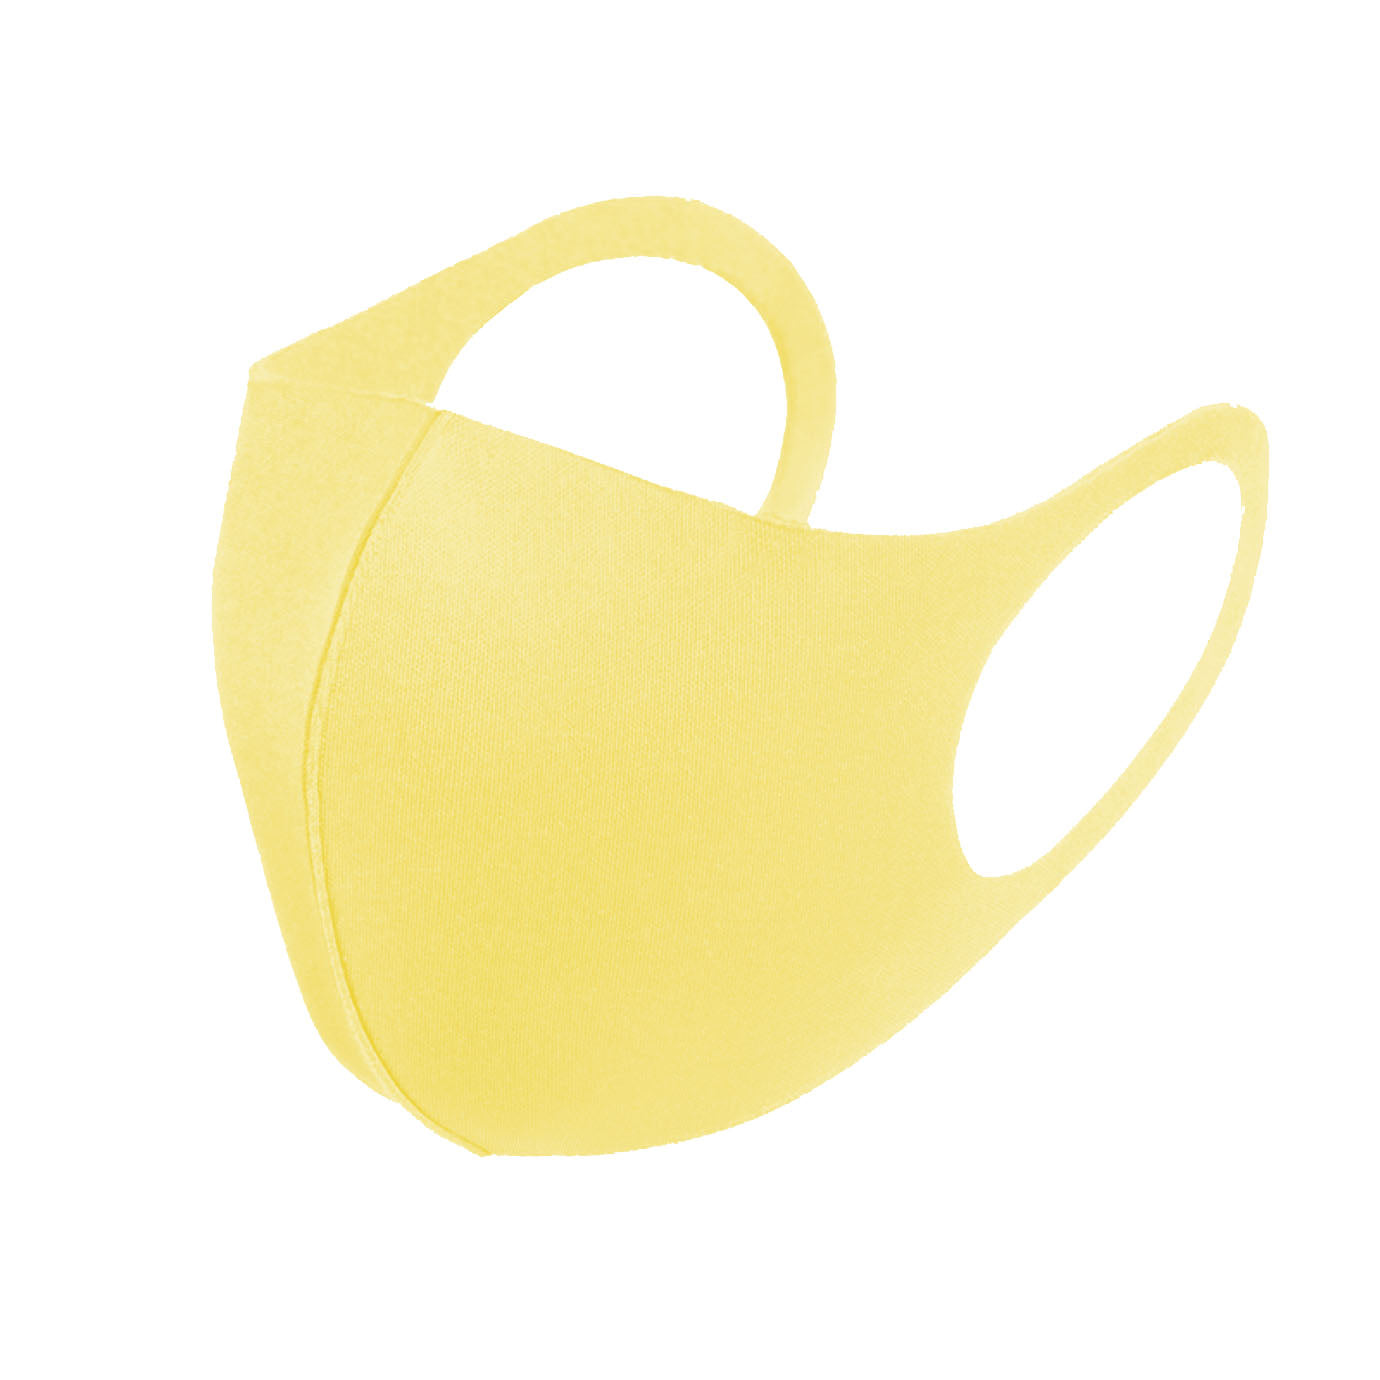 3 Pack Yellow Lemon Reusable Fabric Face Masks Covering Washable Adult Size